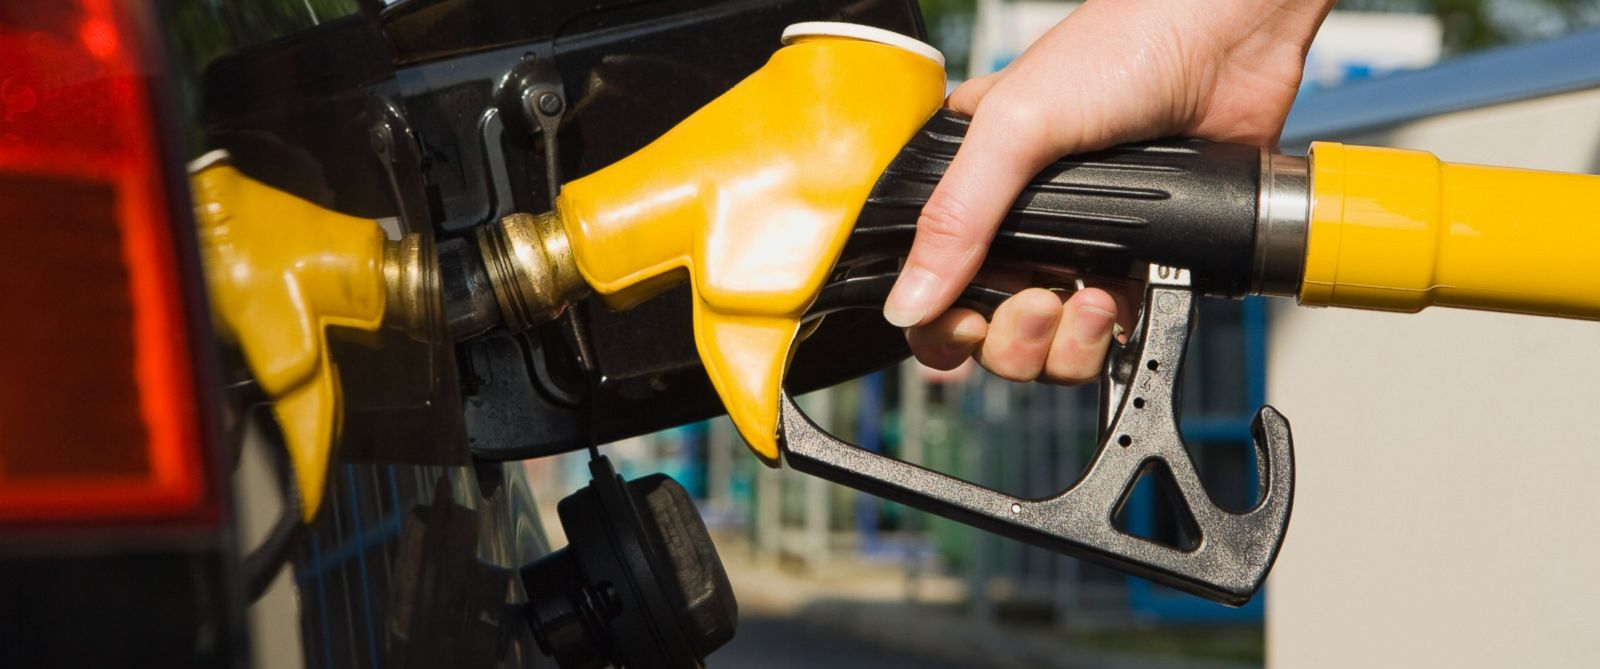 PHOTO: A person is pictured pumping gas in this stock image.